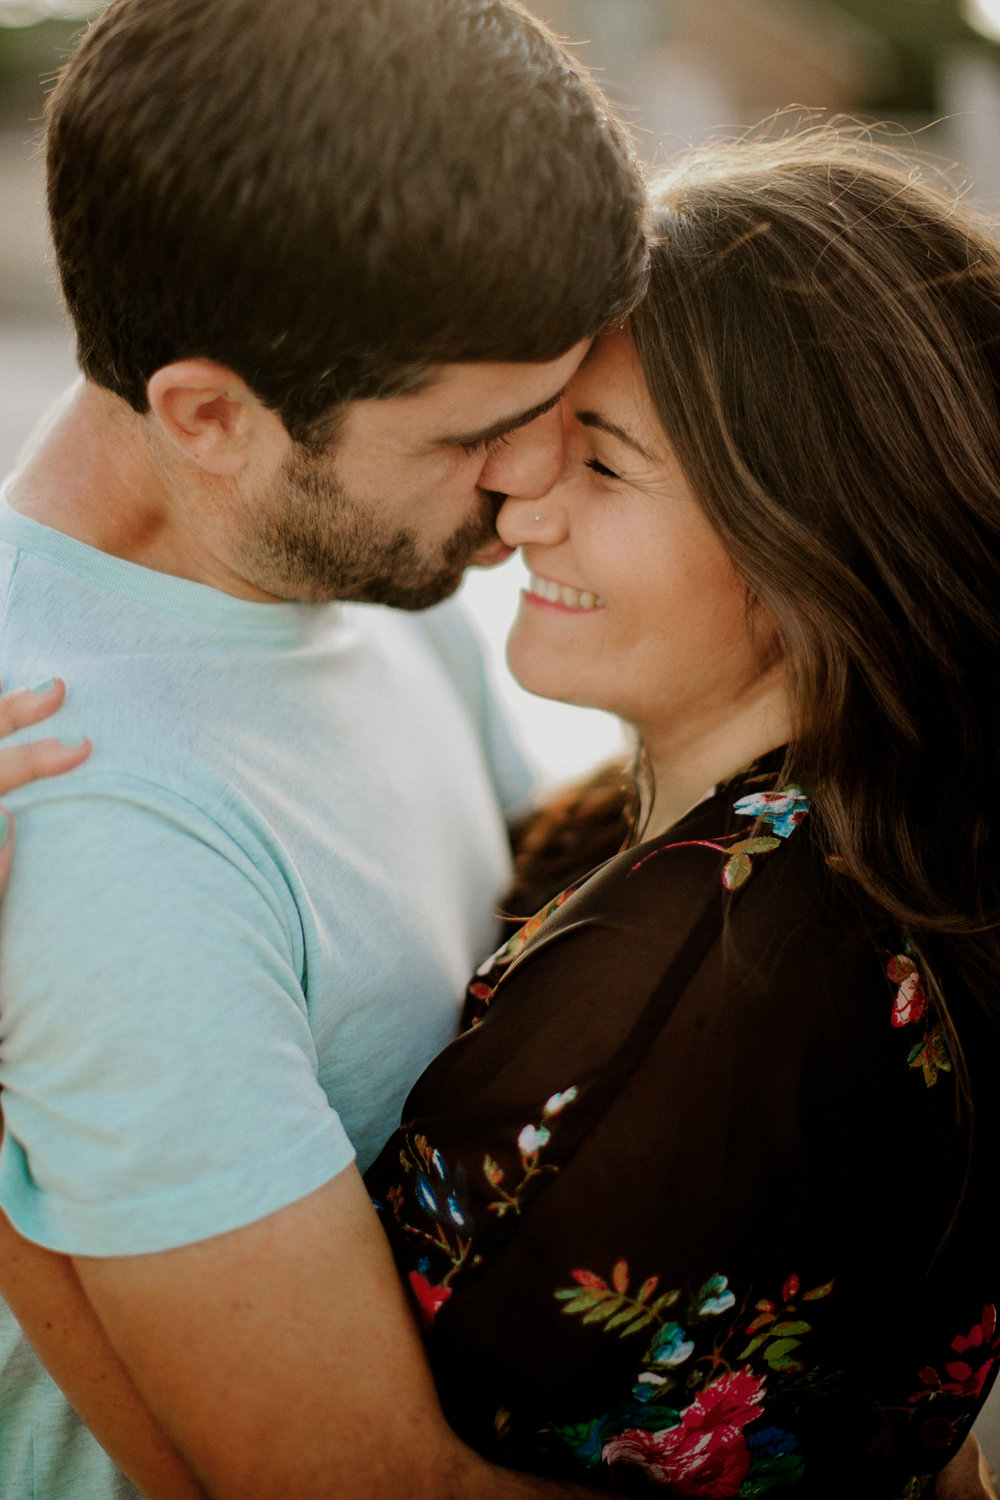 ENGAGMENT + PORTRAIT SESSIONS$400 or FREE - Live in the Nashville, TN area? Find out how you can get free engagement or portrait session.